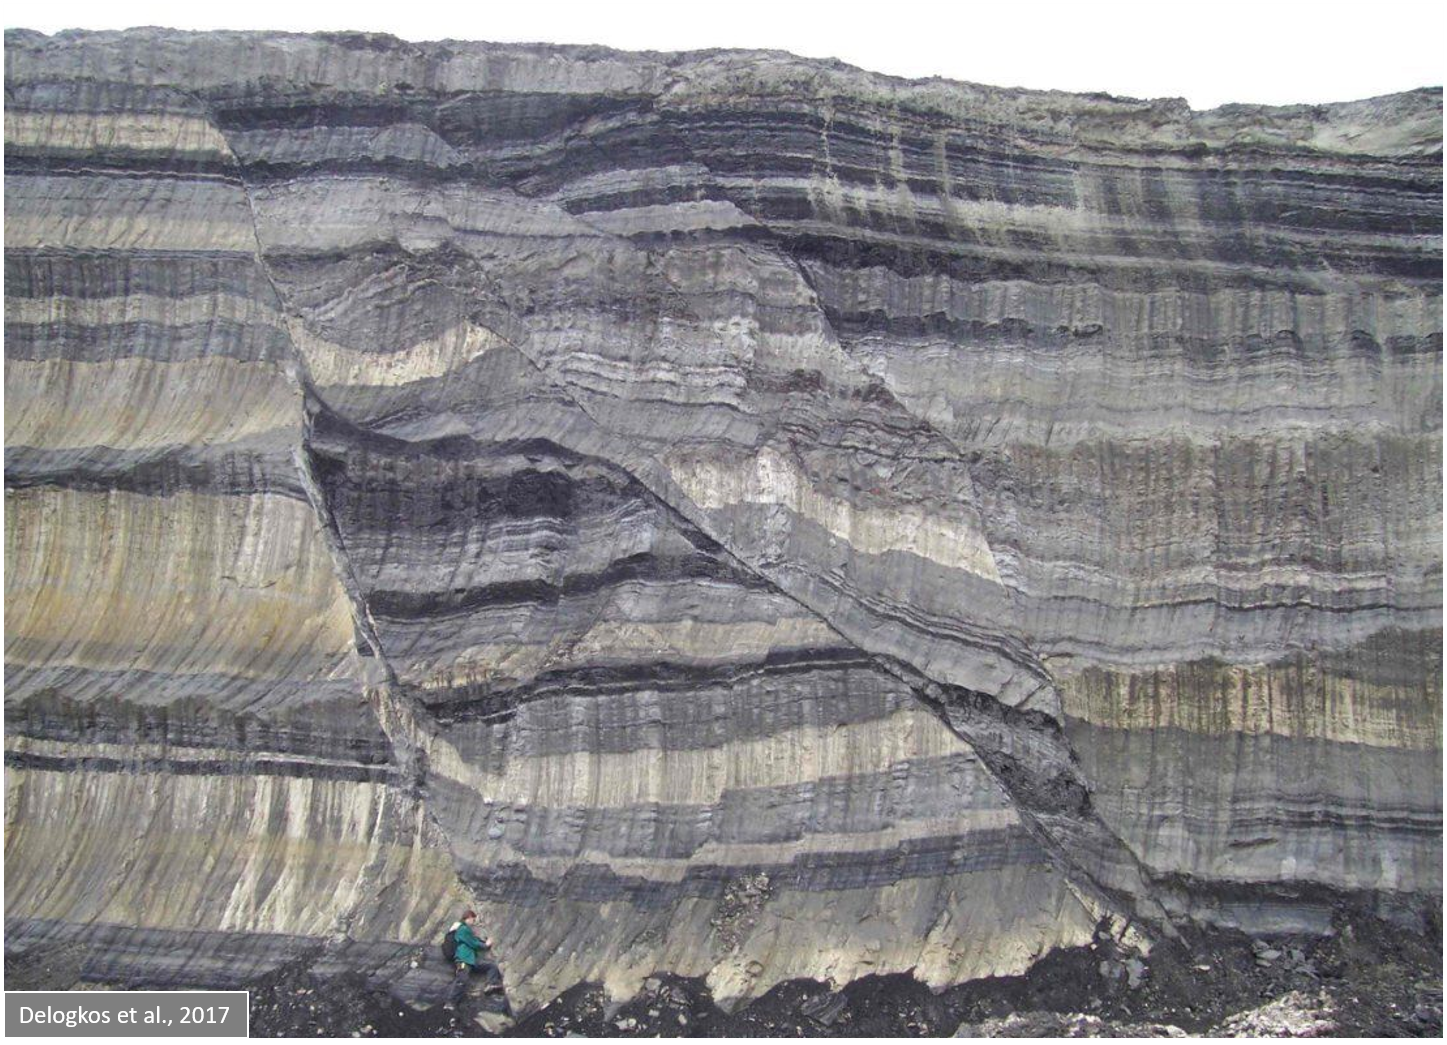 FREE WEBINAR: A summary of structural geology and tectonic processes of sedimentary basins